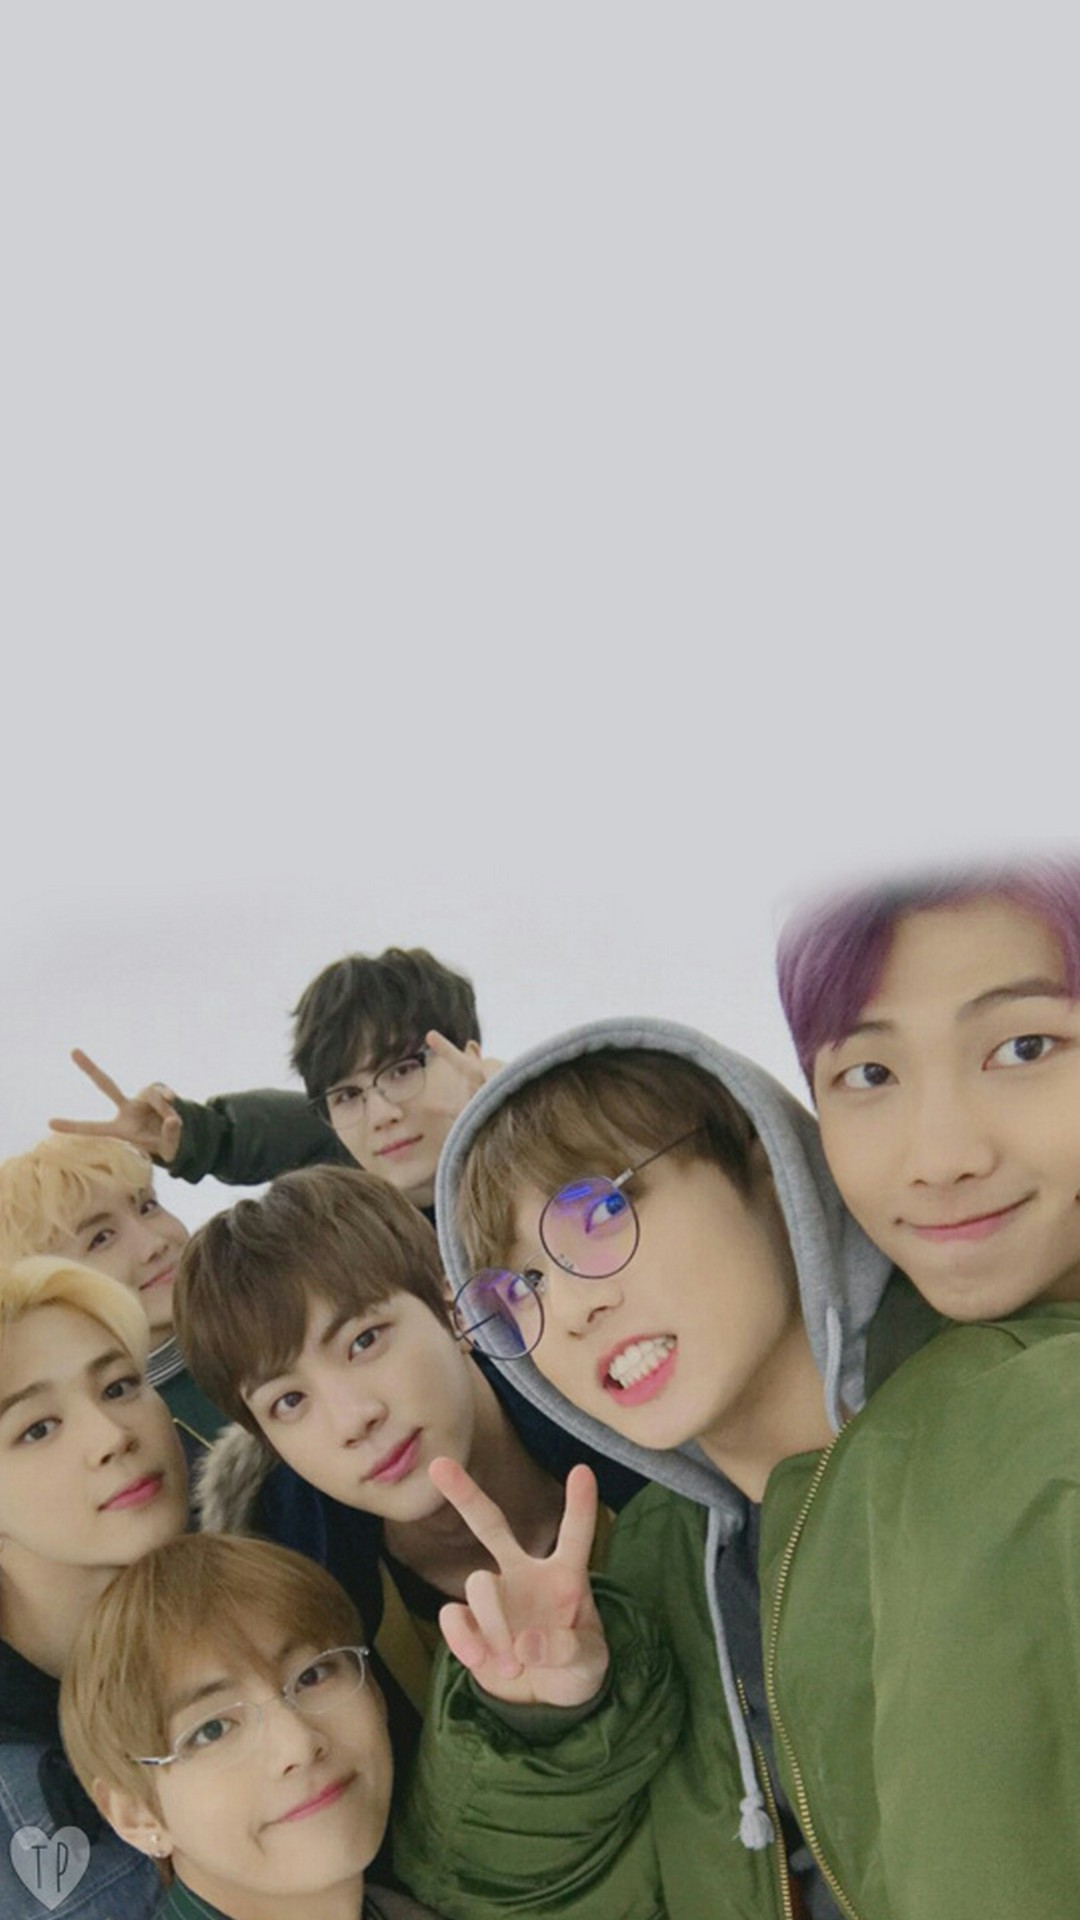 BTS iPhone Wallpaper Lock Screen   2020 Cute iPhone Wallpaper 1080x1920